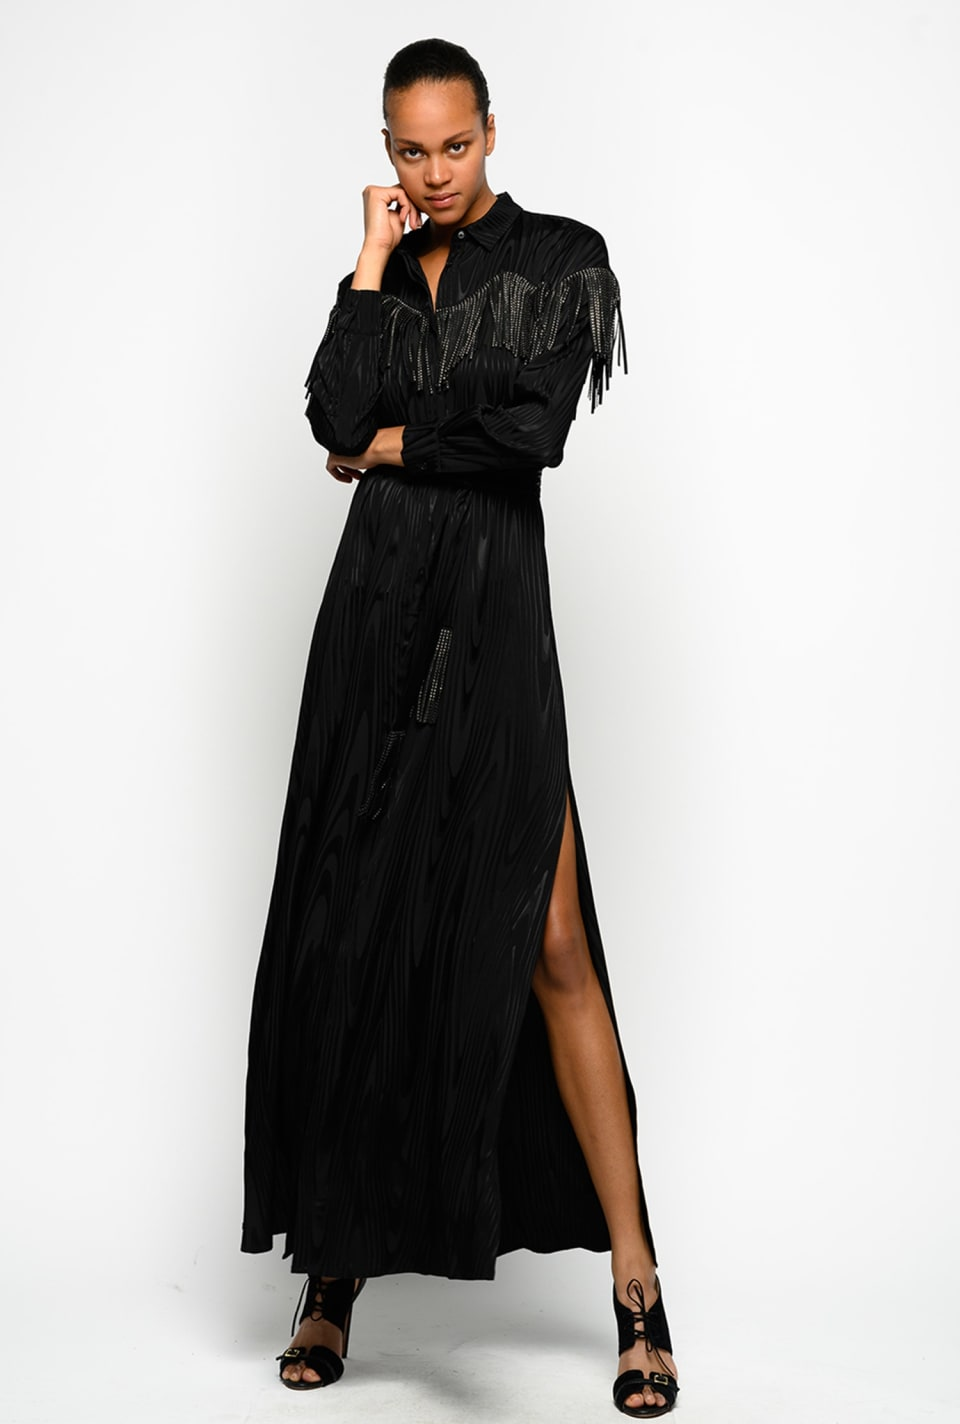 Long shirtwaister dress with rhinestone fringe